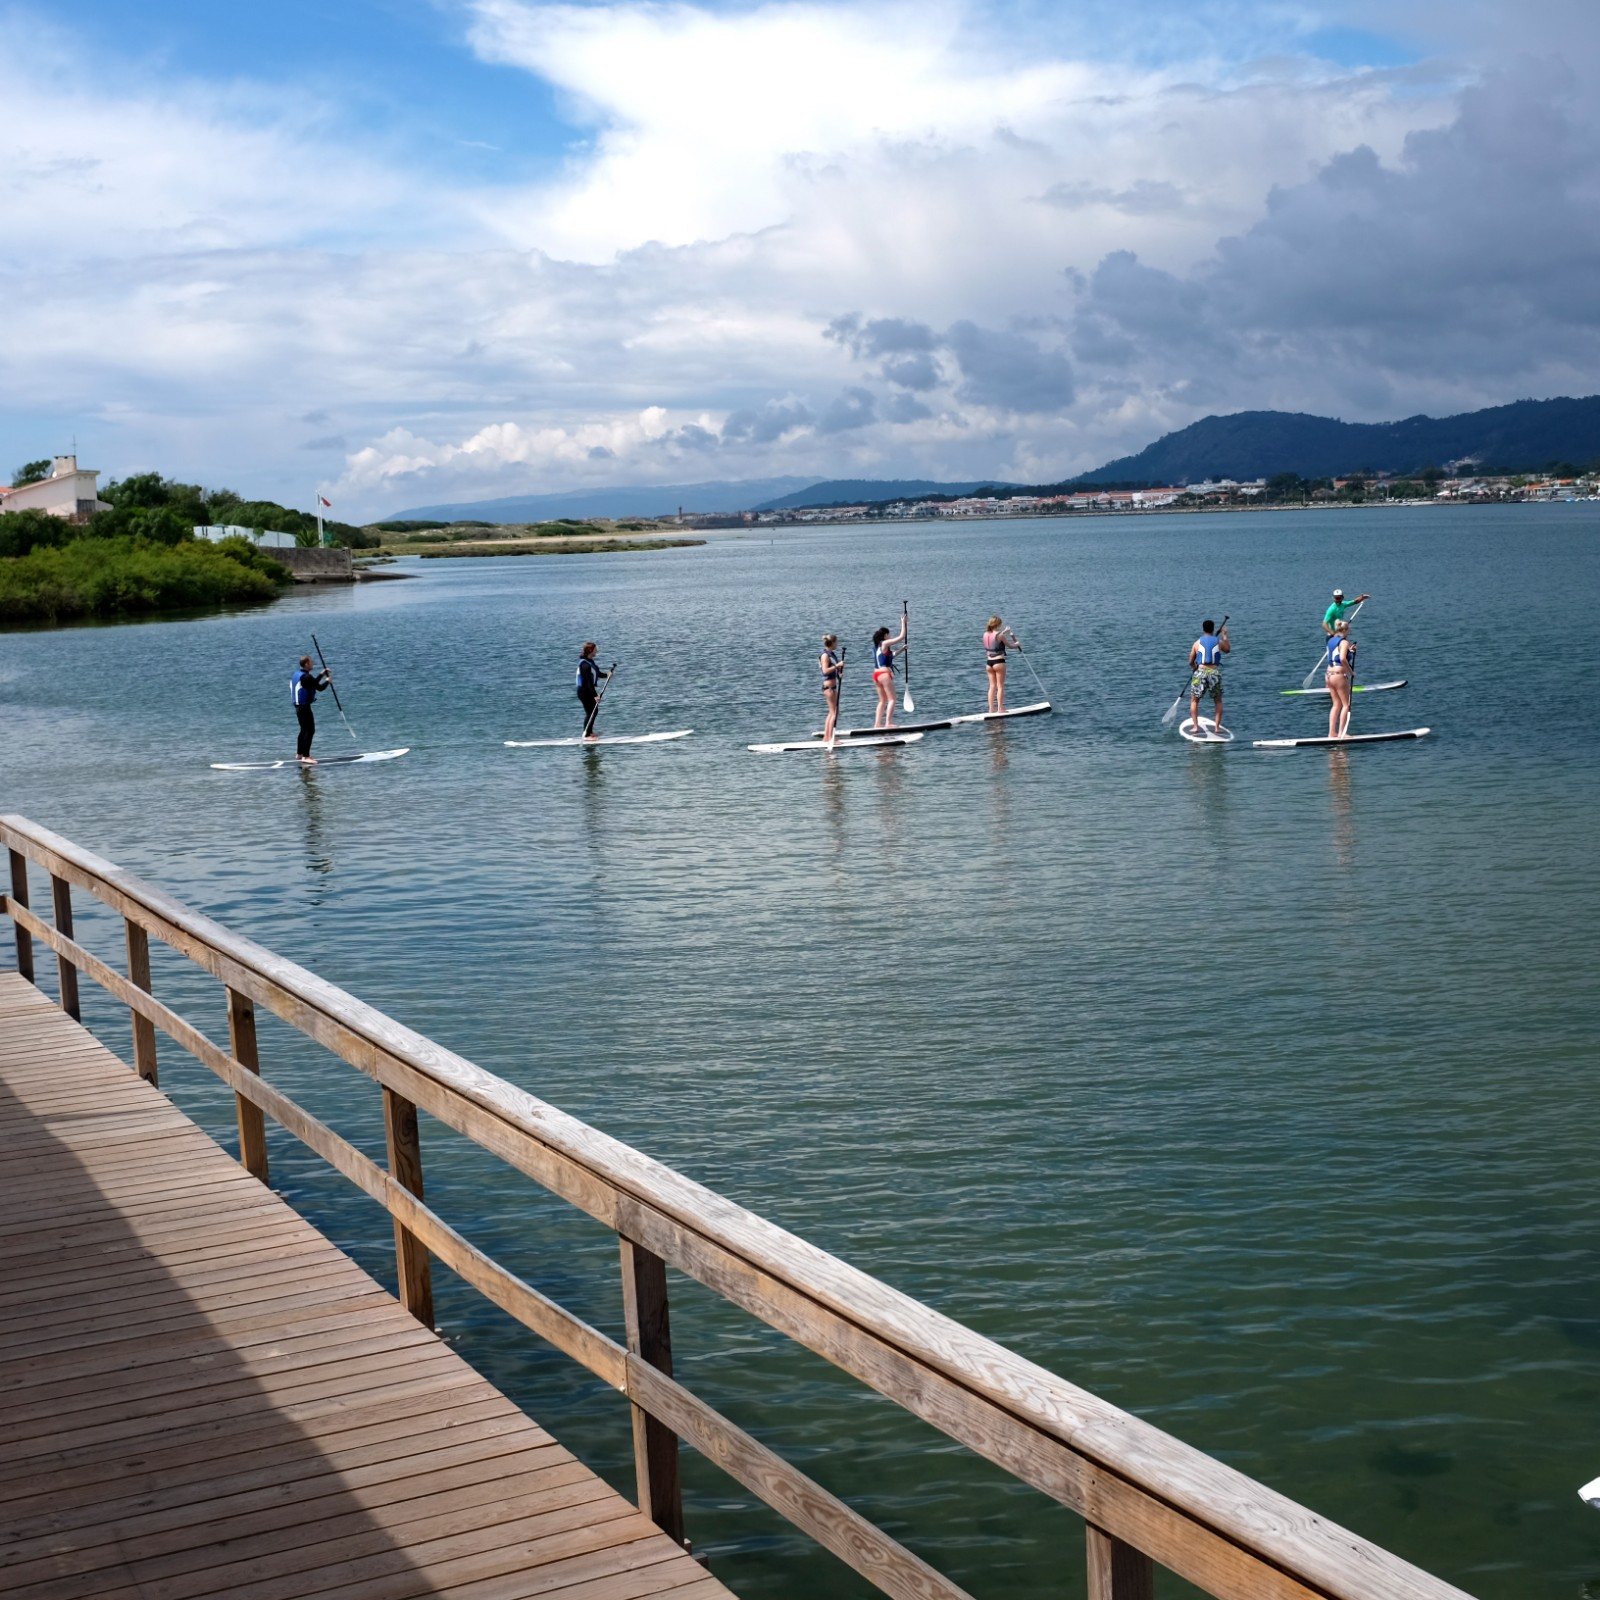 Stand-up paddle surfers at ElementFish surfcamp, Ofir Portugal